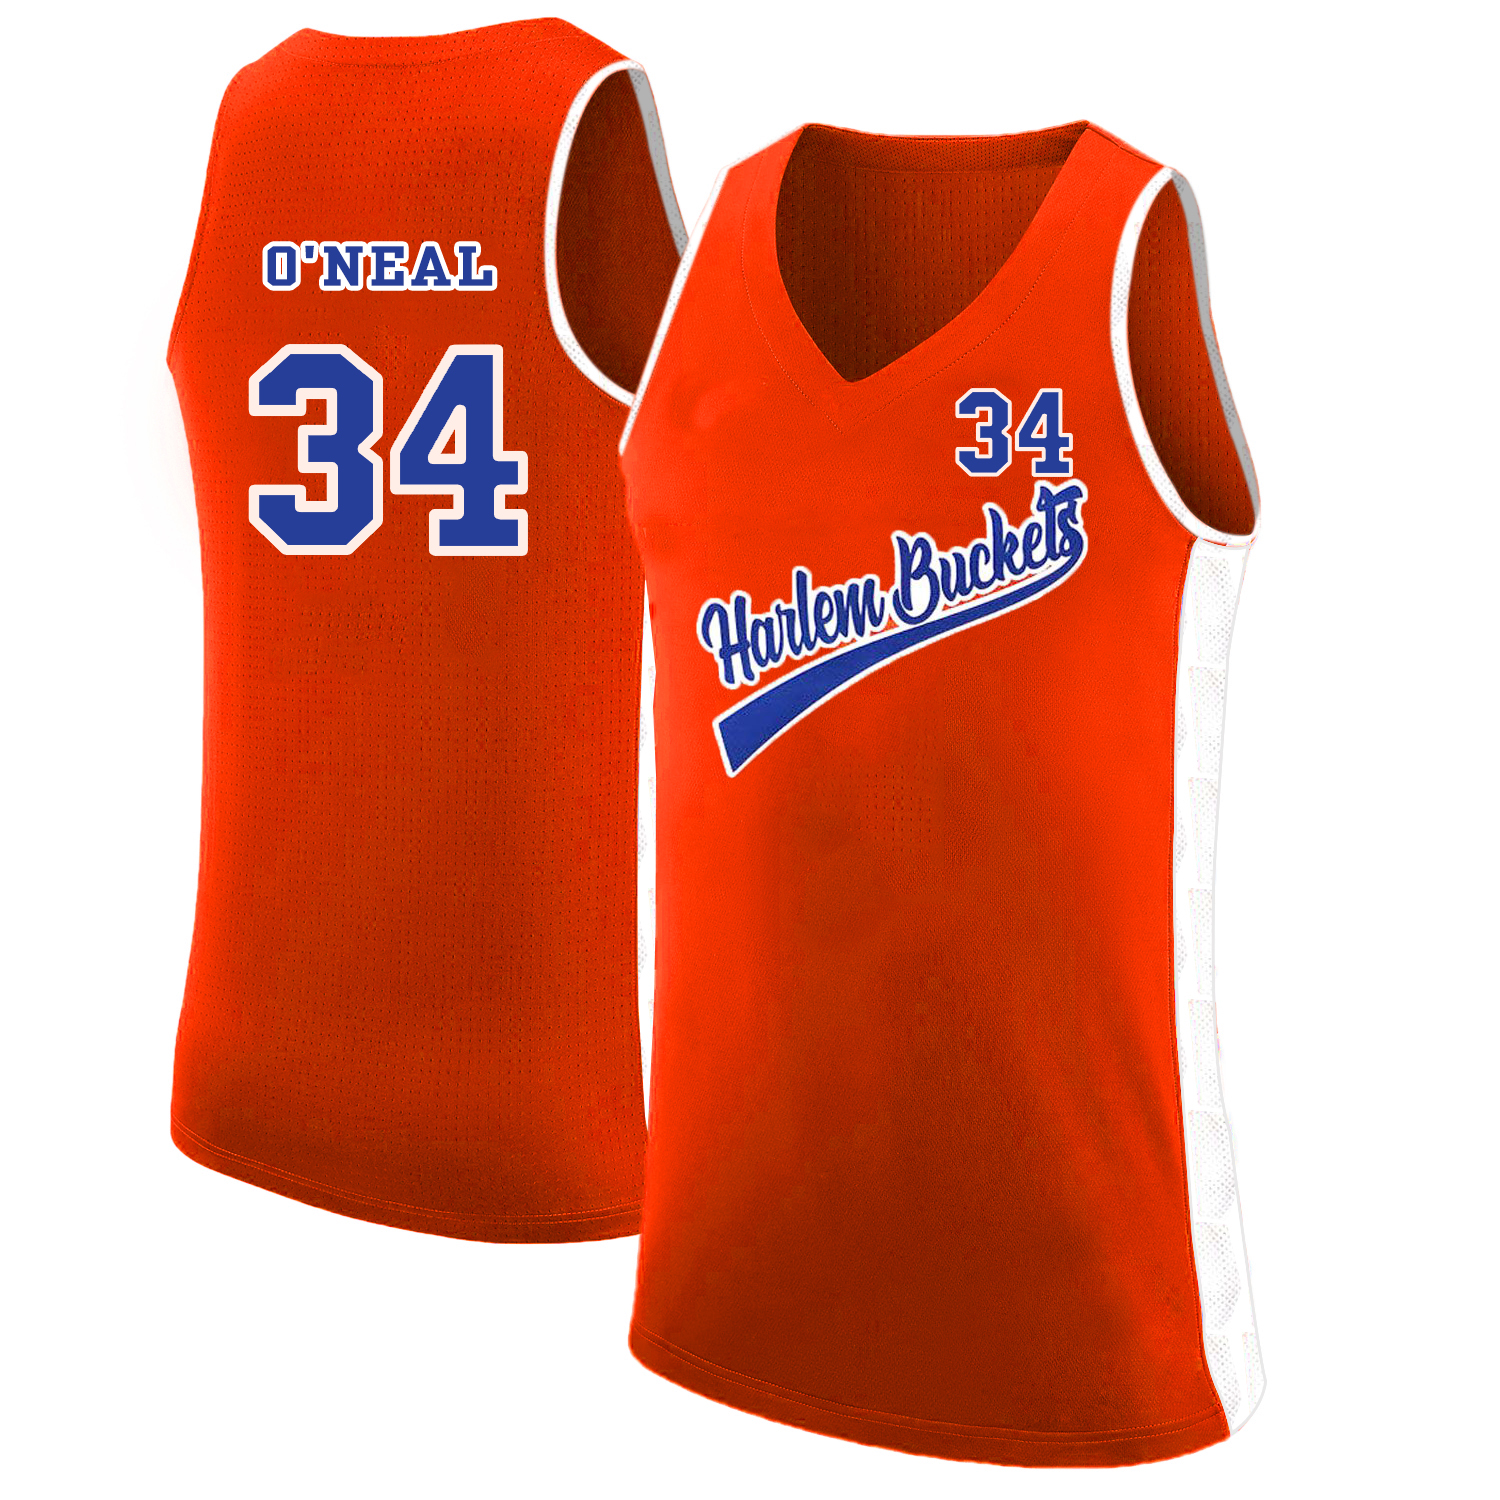 Harlem Buckets 34 Shaquille O'Neal Orange Uncle Drew Basketball Jersey